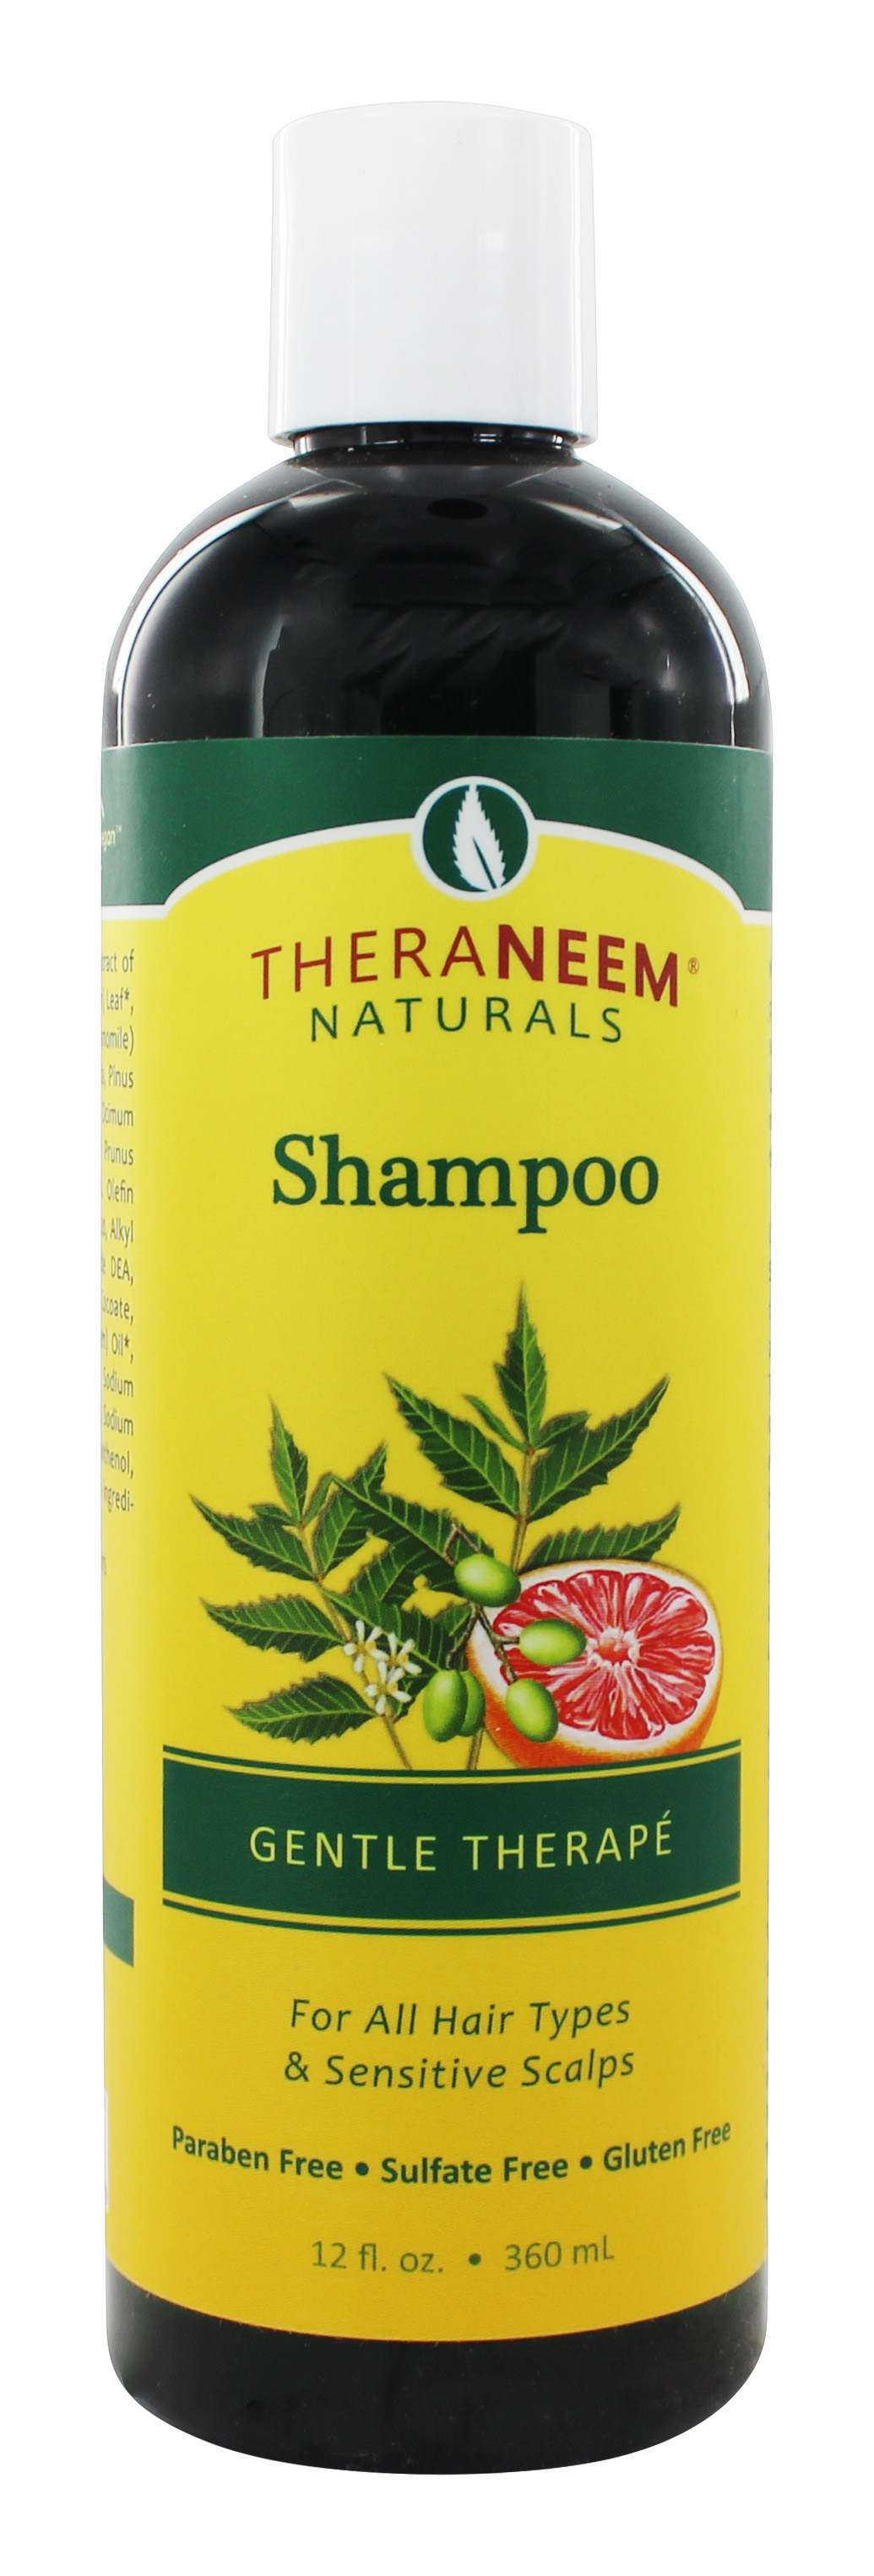 Organix South - TheraNeem Organix Shampoo Gentle Therape - 12 oz.